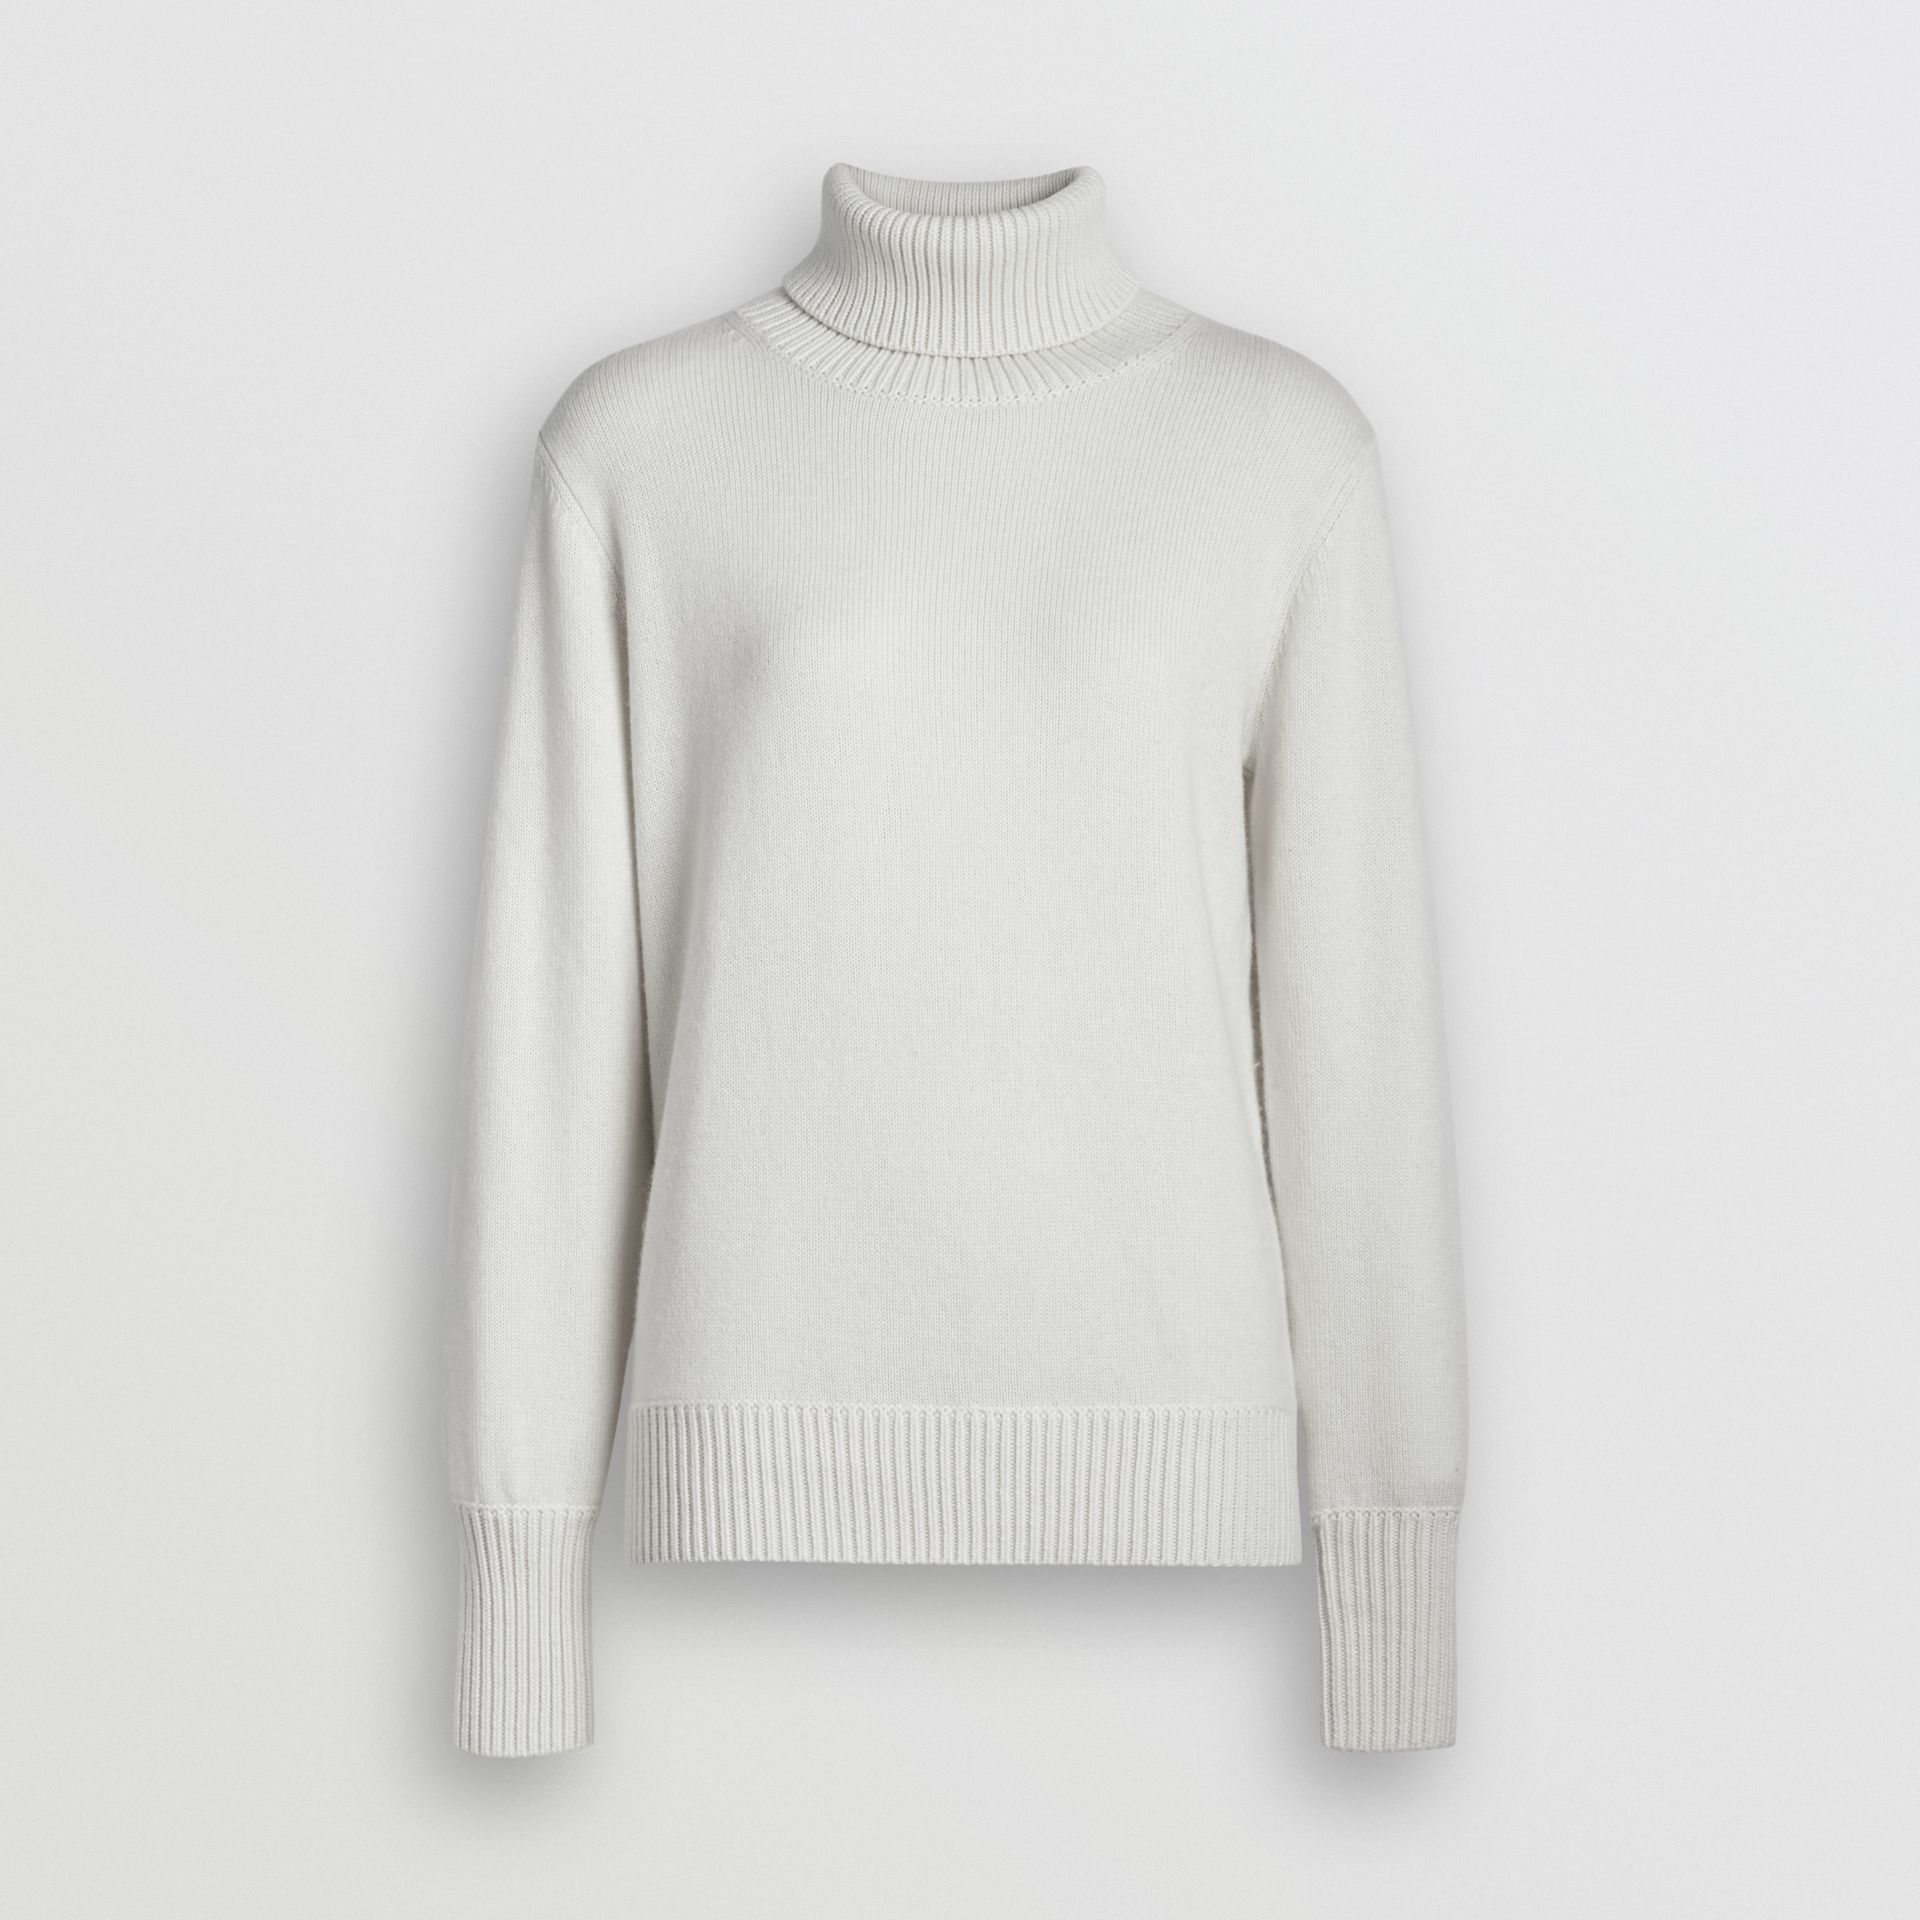 Embroidered Crest Cashmere Roll-neck Sweater in White - Women | Burberry United Kingdom - gallery image 3